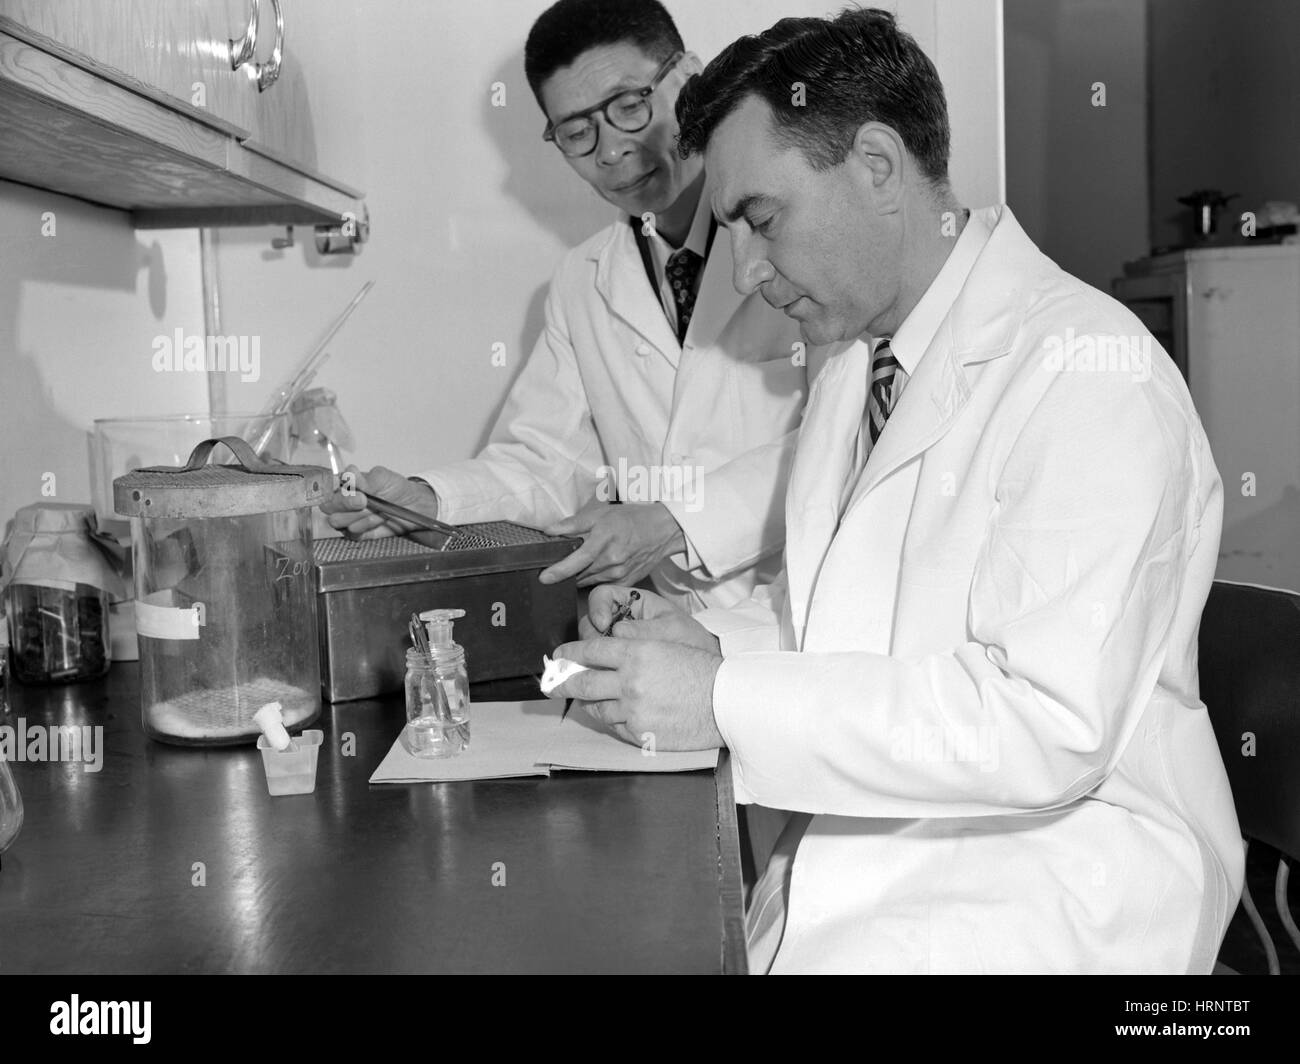 Polio Research, 1953 - Stock Image